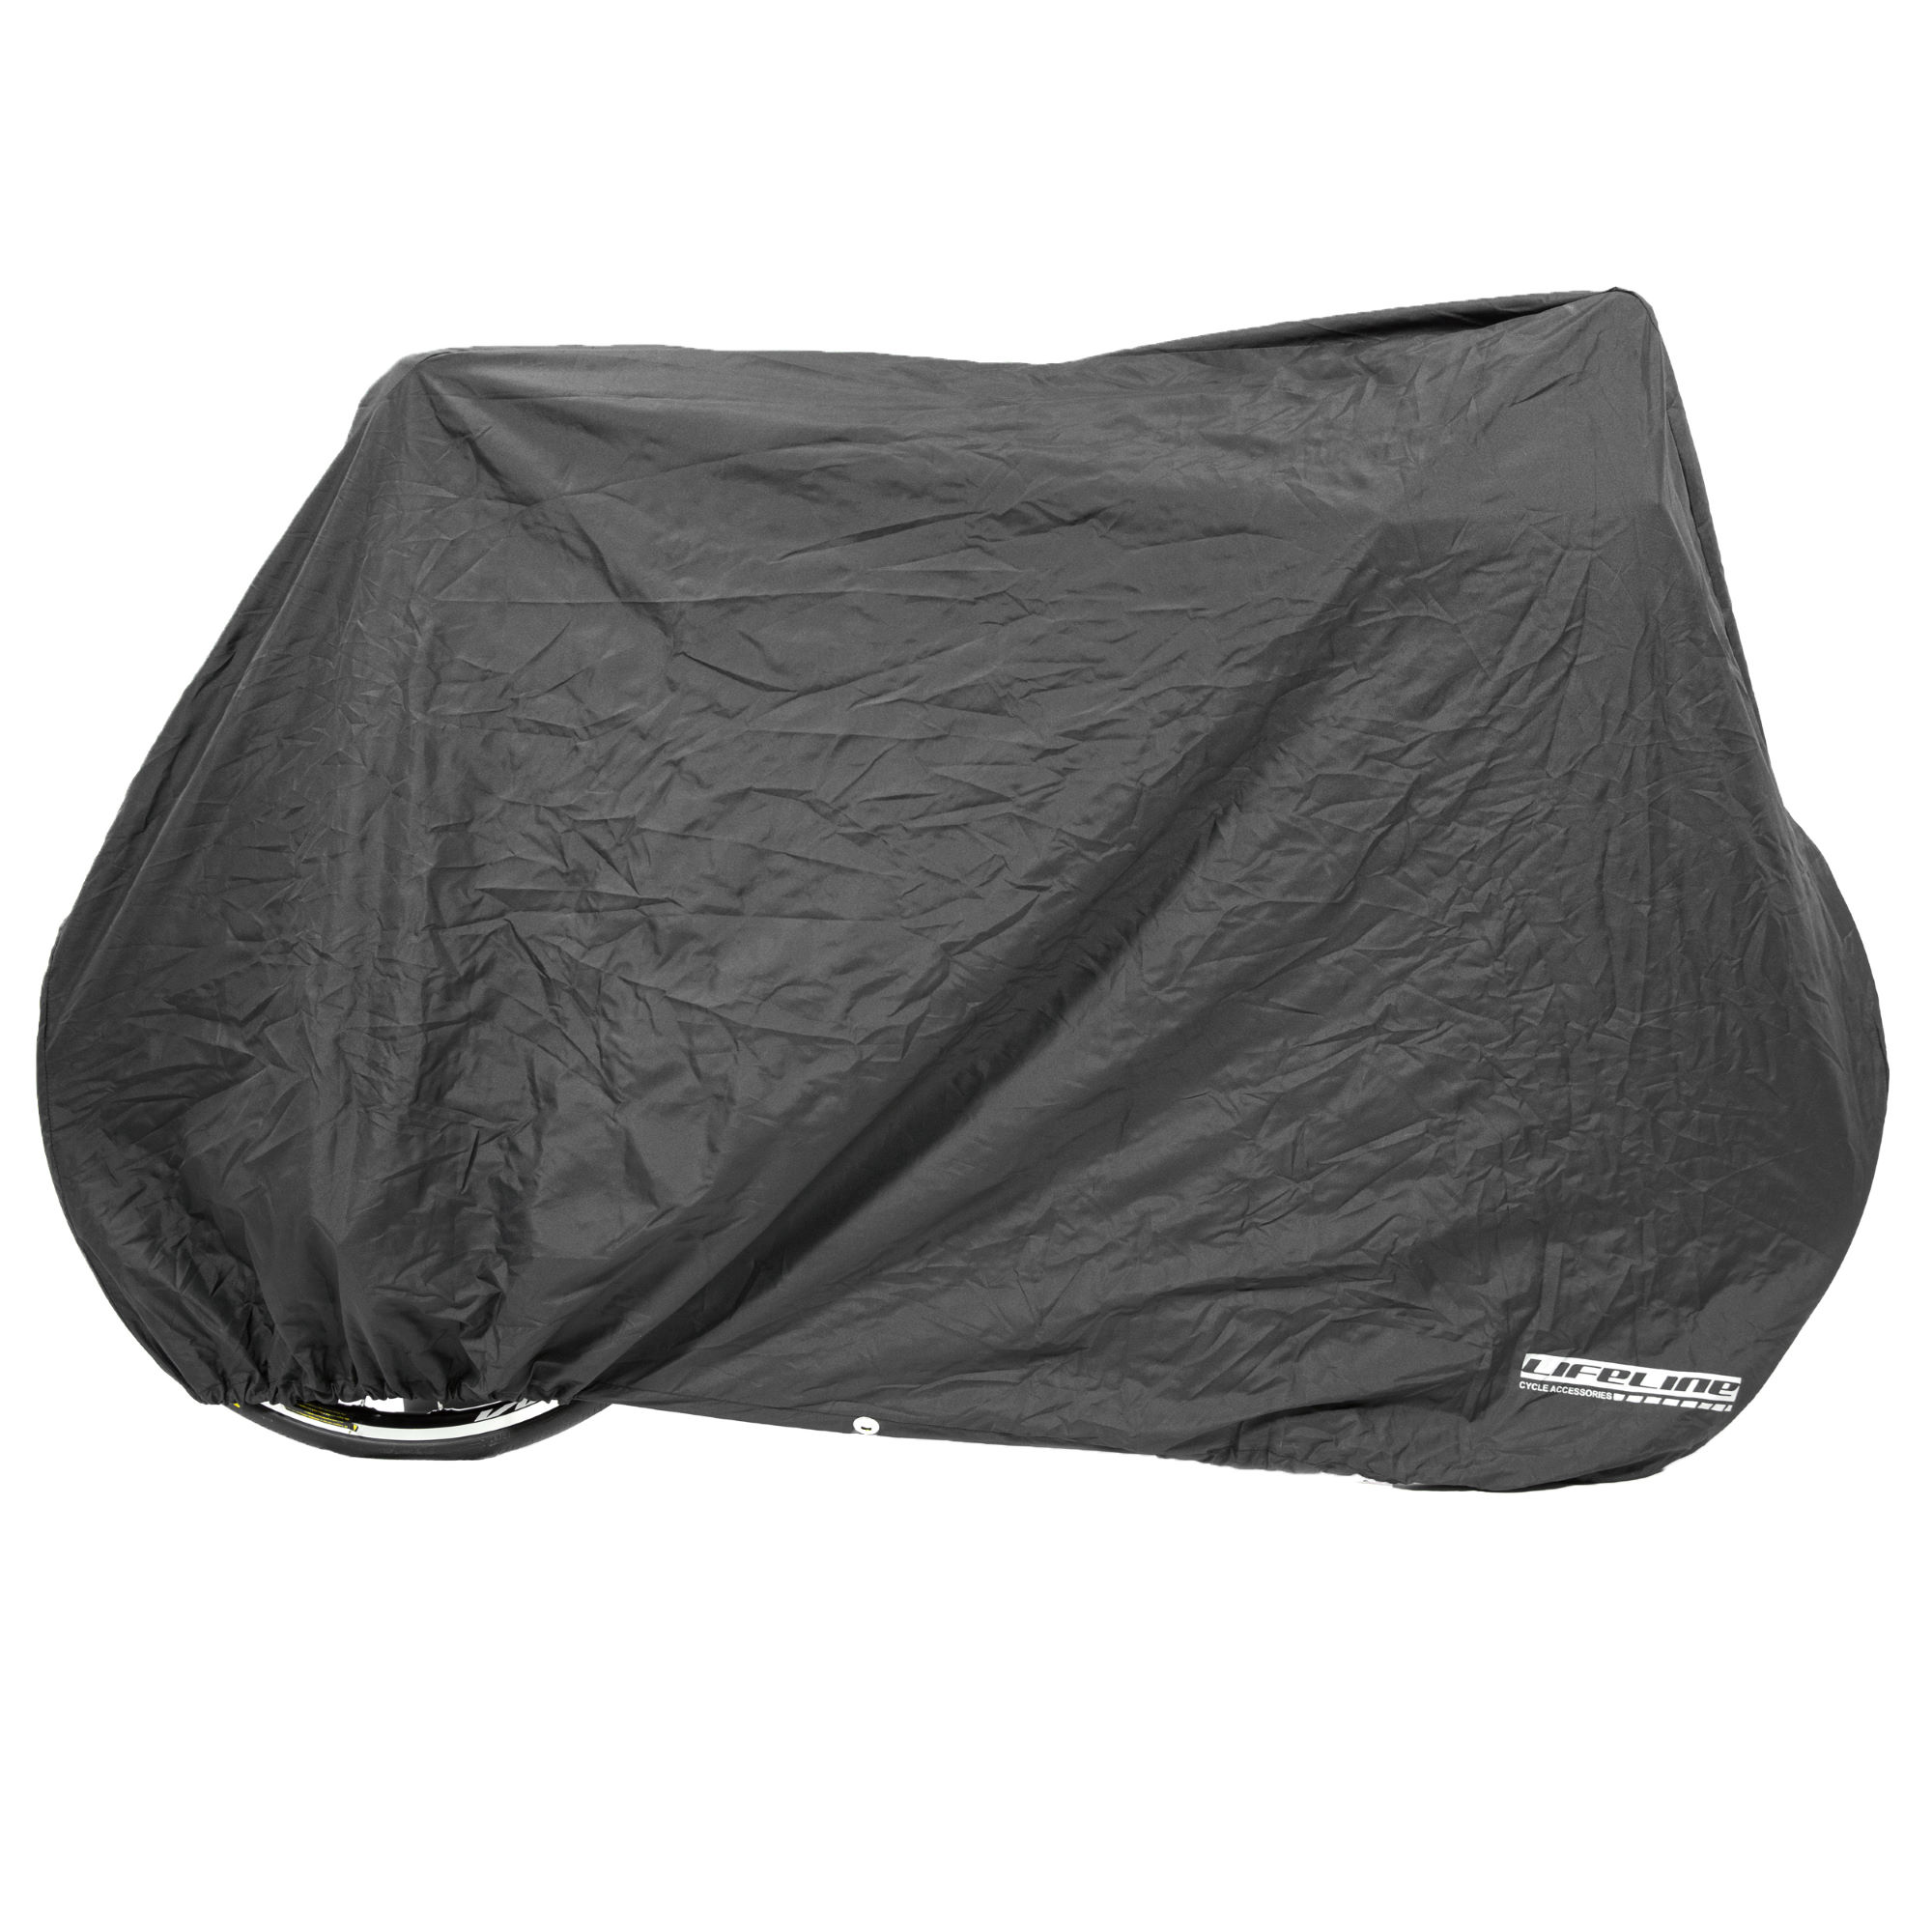 Protection contre la pluie lifeline bike cover for Housse de velo intersport